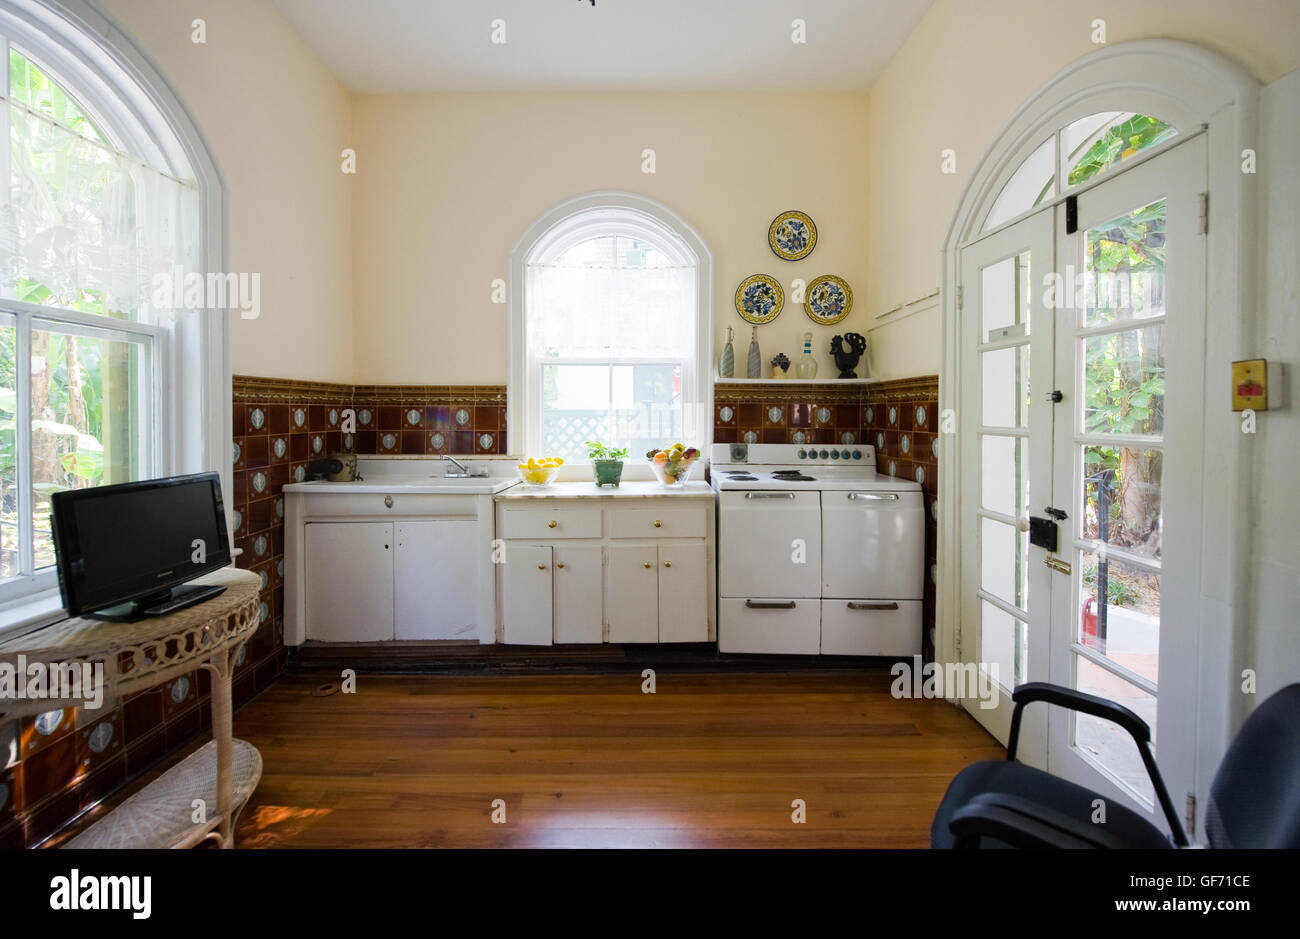 KEY WEST, FLORIDA, USA - MAY 03, 2016: The kitchen of the Ernest Hemingway House in Key West in Florida. Stock Photo